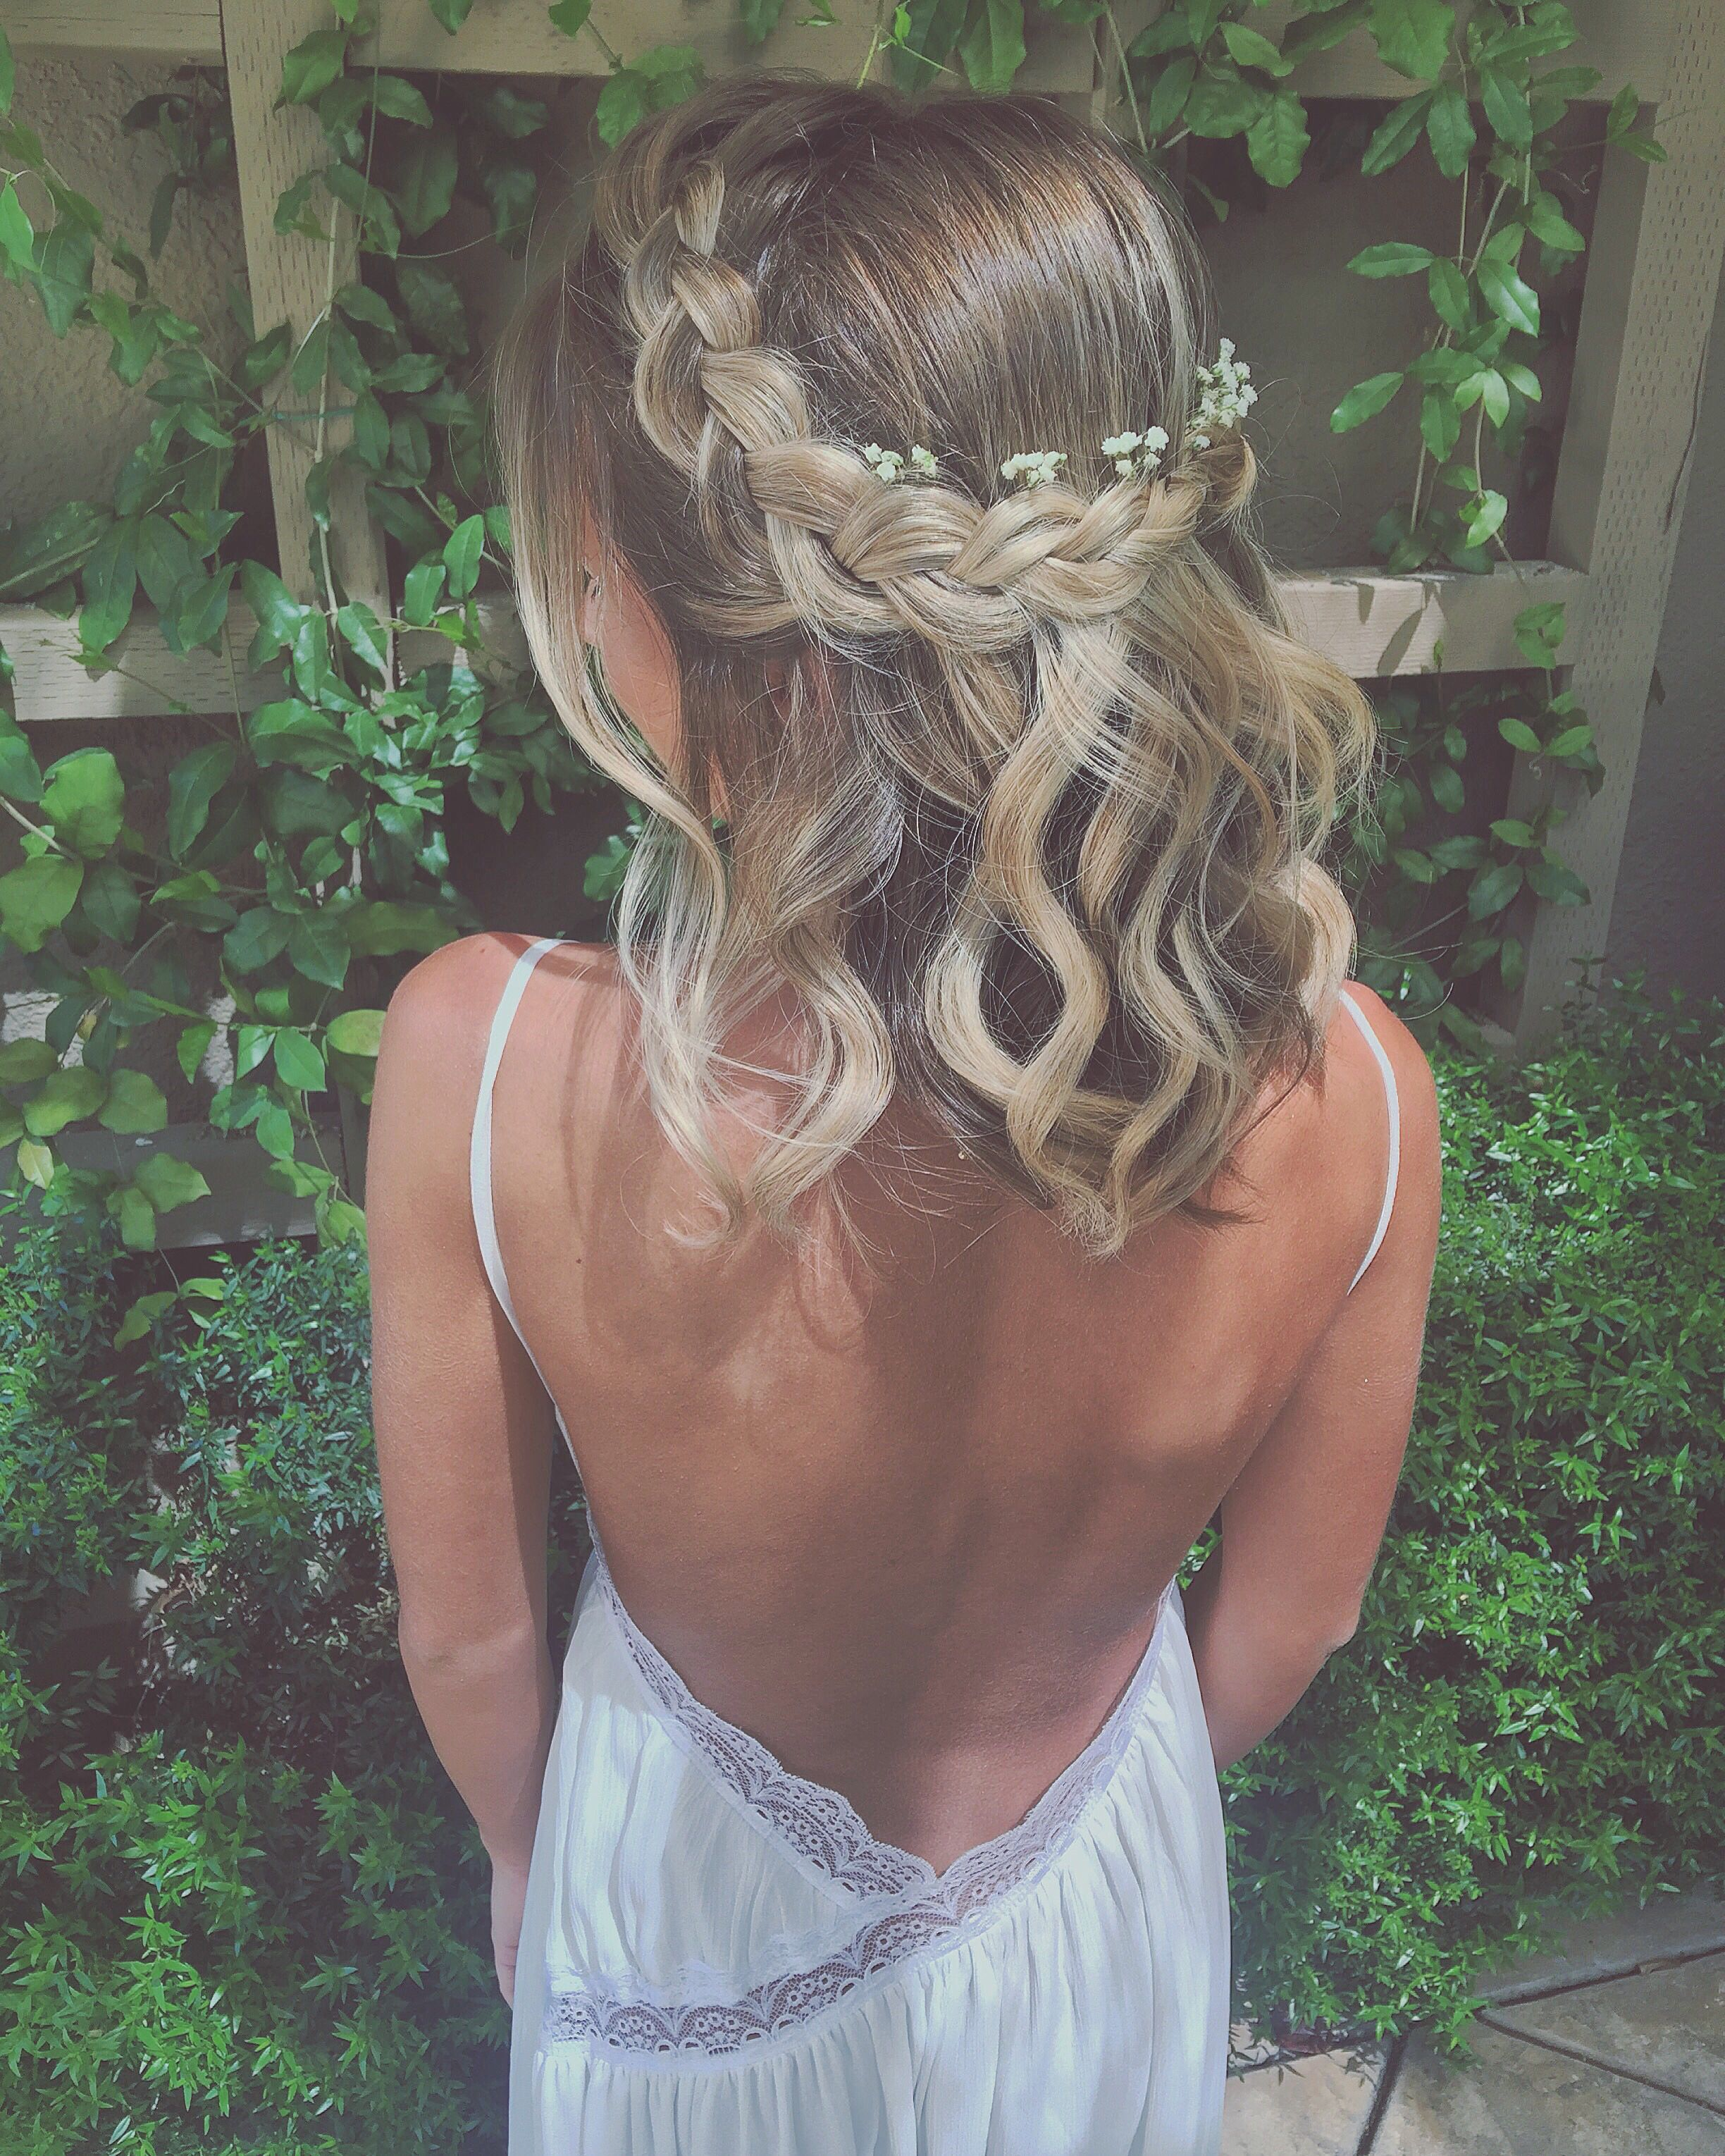 braided crown with baby's breath flowers   hair   pinterest